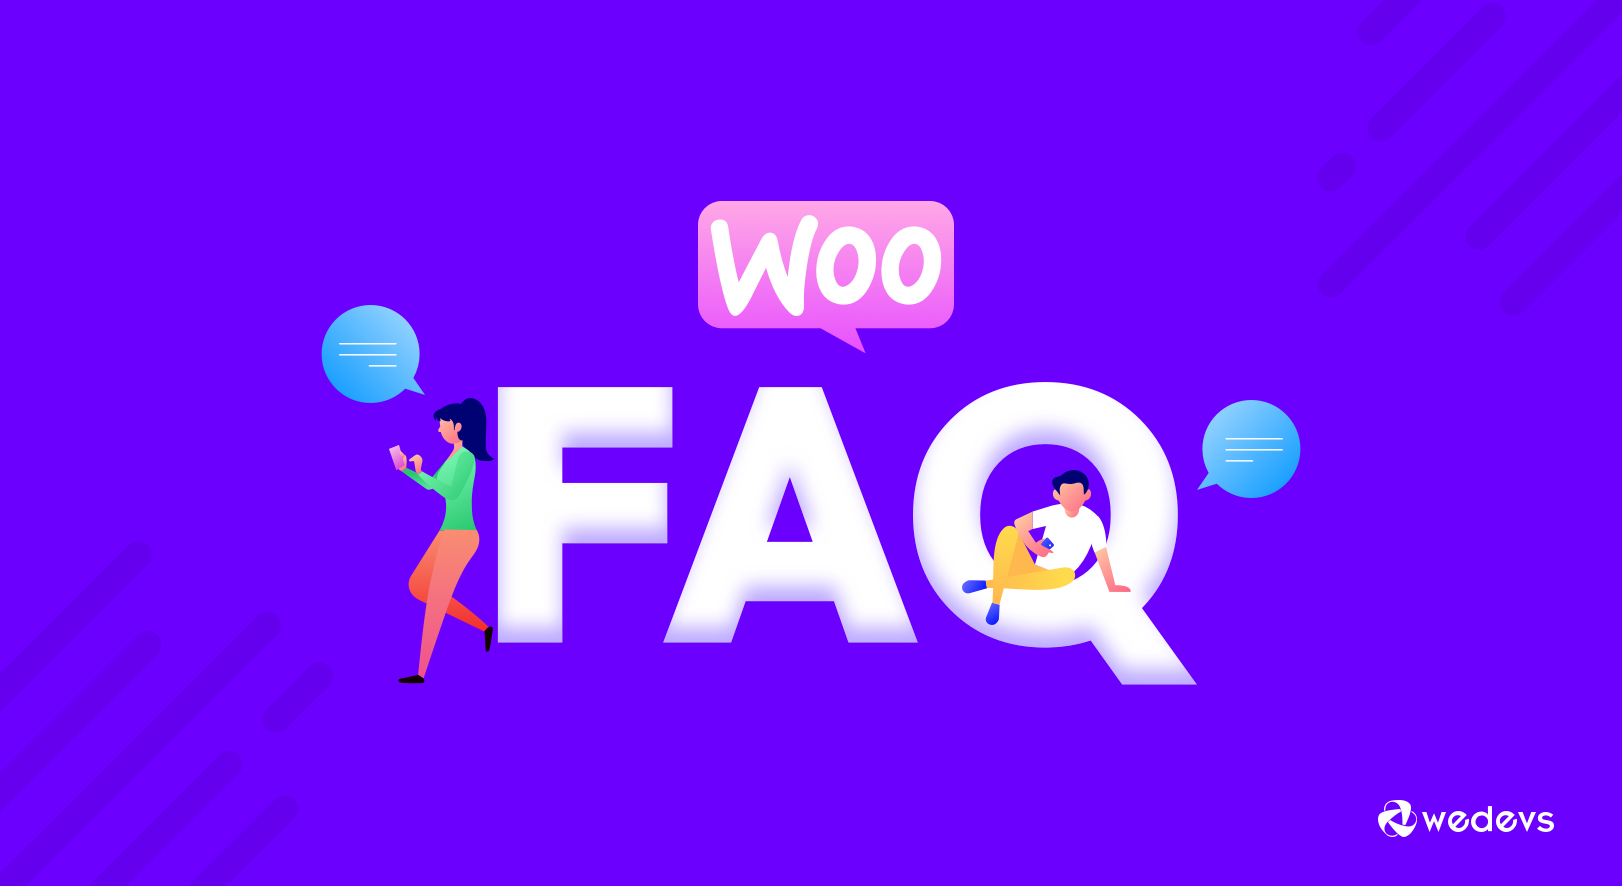 All You Need to Know about WordPress' eCommerce Plugin 'WooCommerce' (with FAQ)